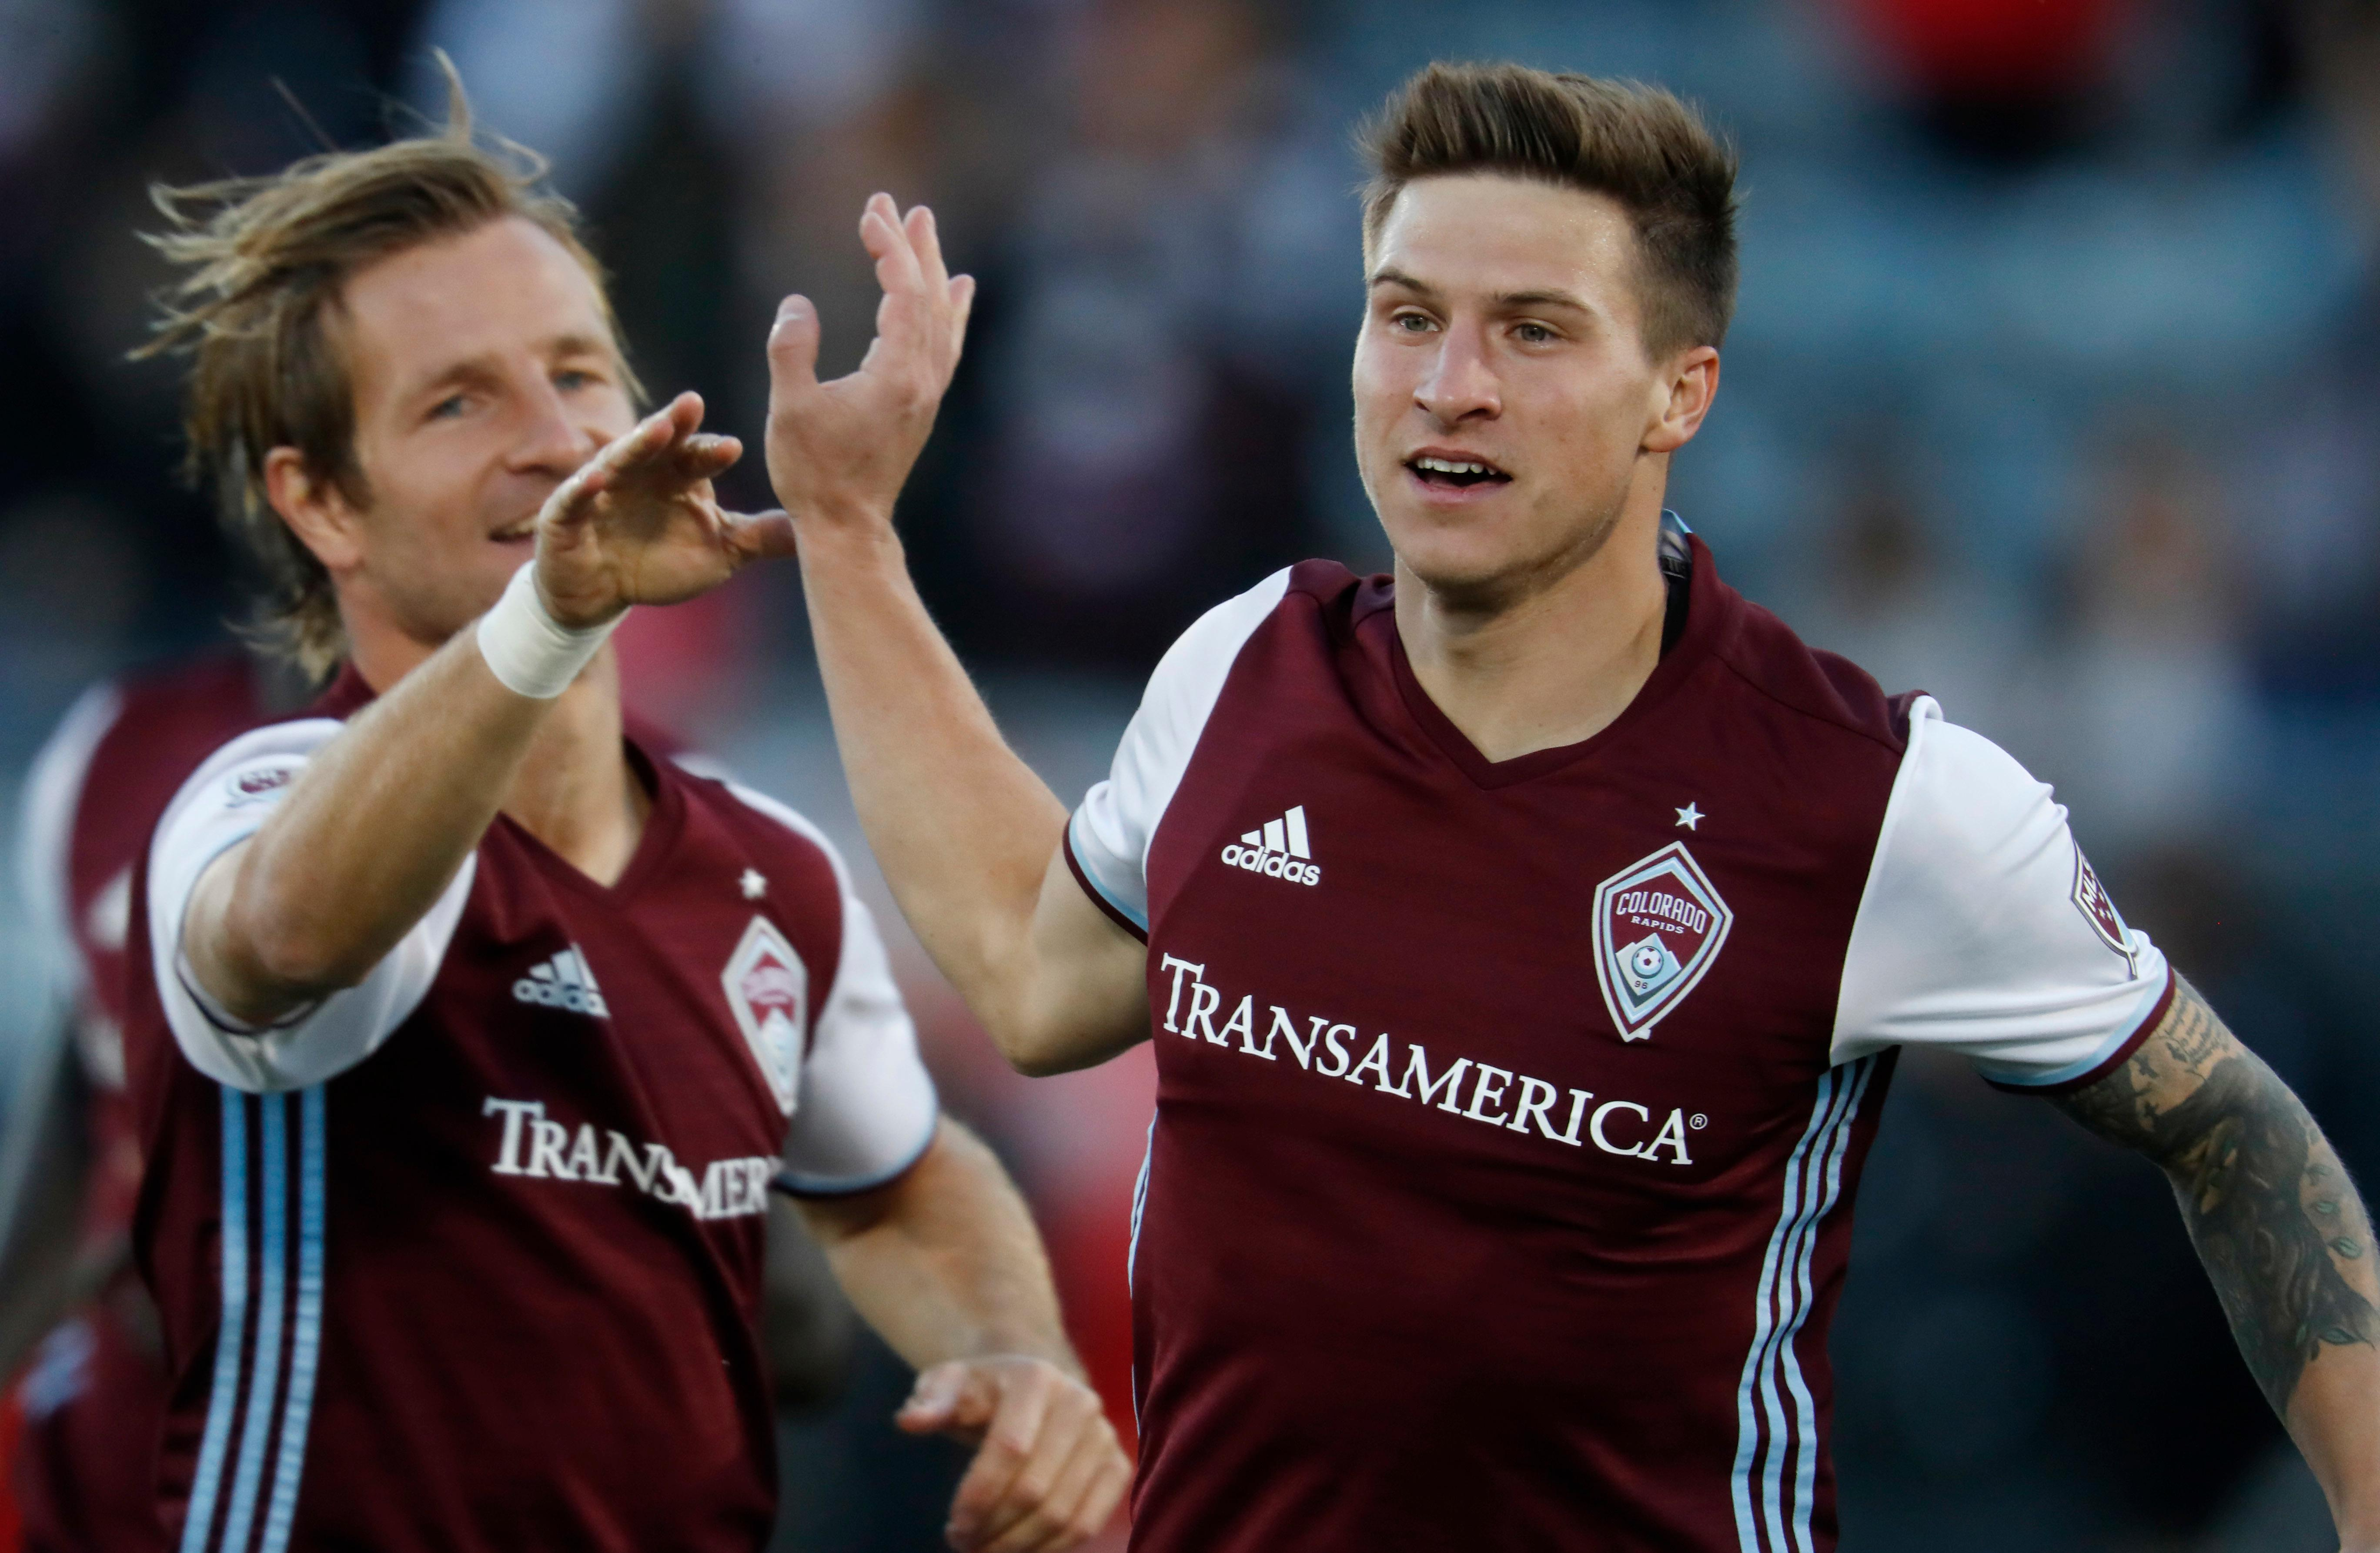 Colorado Rapids midfielder Stefan Aigner, left, congratulates midfielder Joshua Gatt after his goal against Real Salt Lake early in the first half of an MLS soccer match, Sunday, Oct. 15, 2017, in Commerce City, Colo. (AP Photo/David Zalubowski)